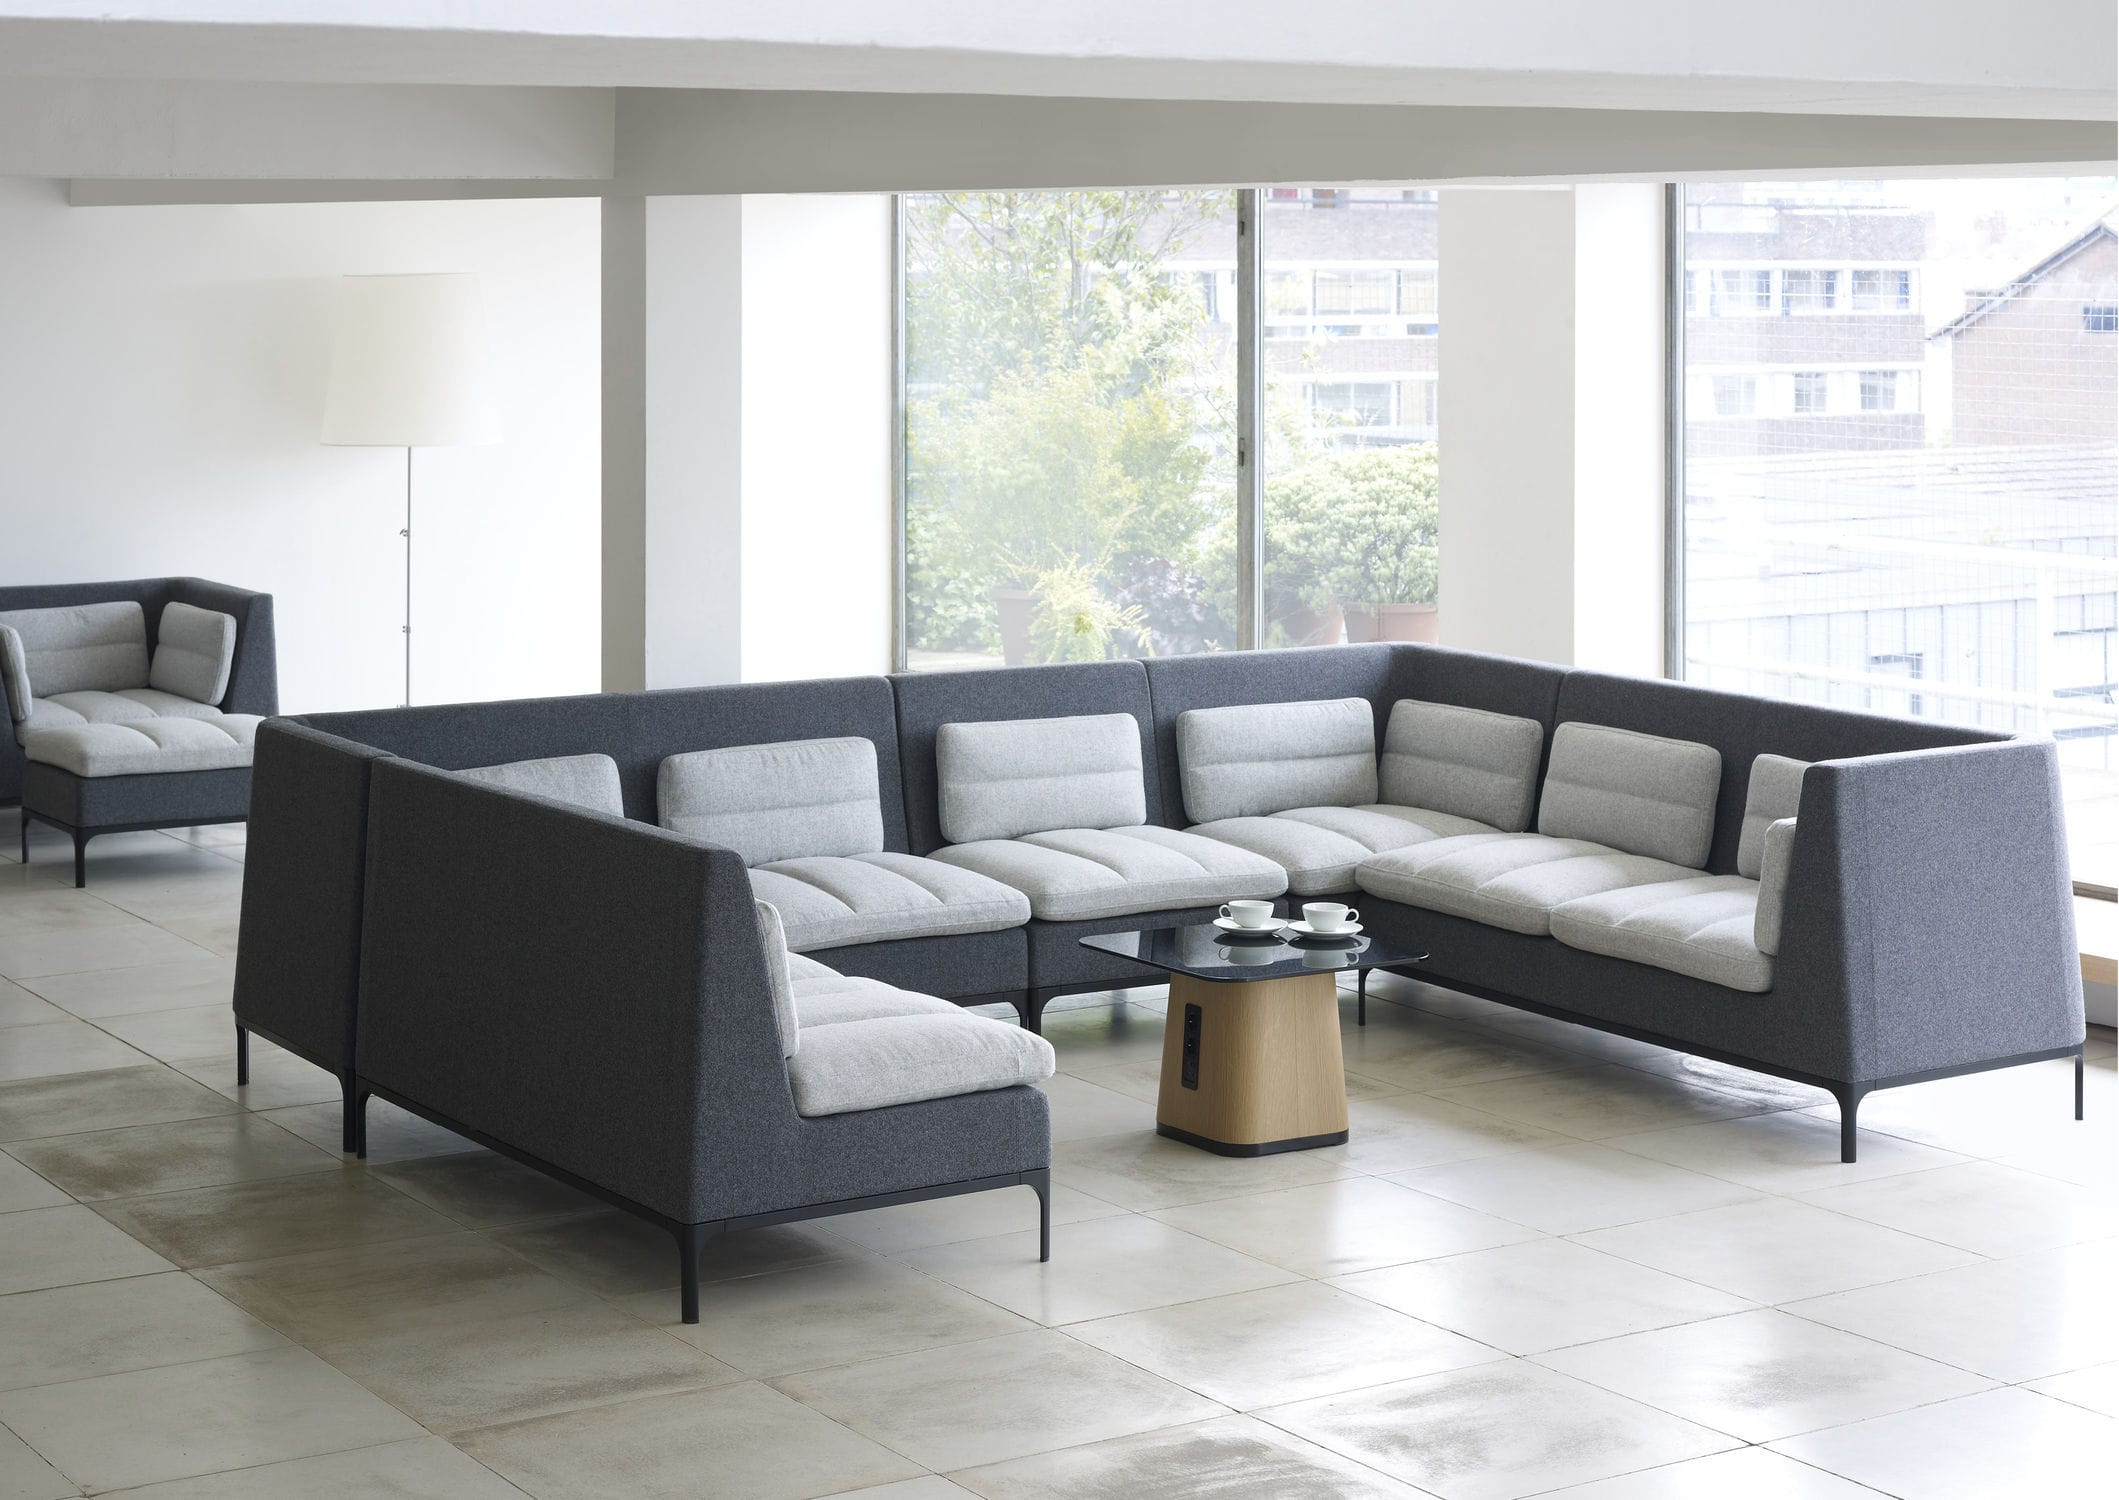 Modular Sofa / Contemporary / Aluminum / Fabric - Havenmark with Haven Sofa Chairs